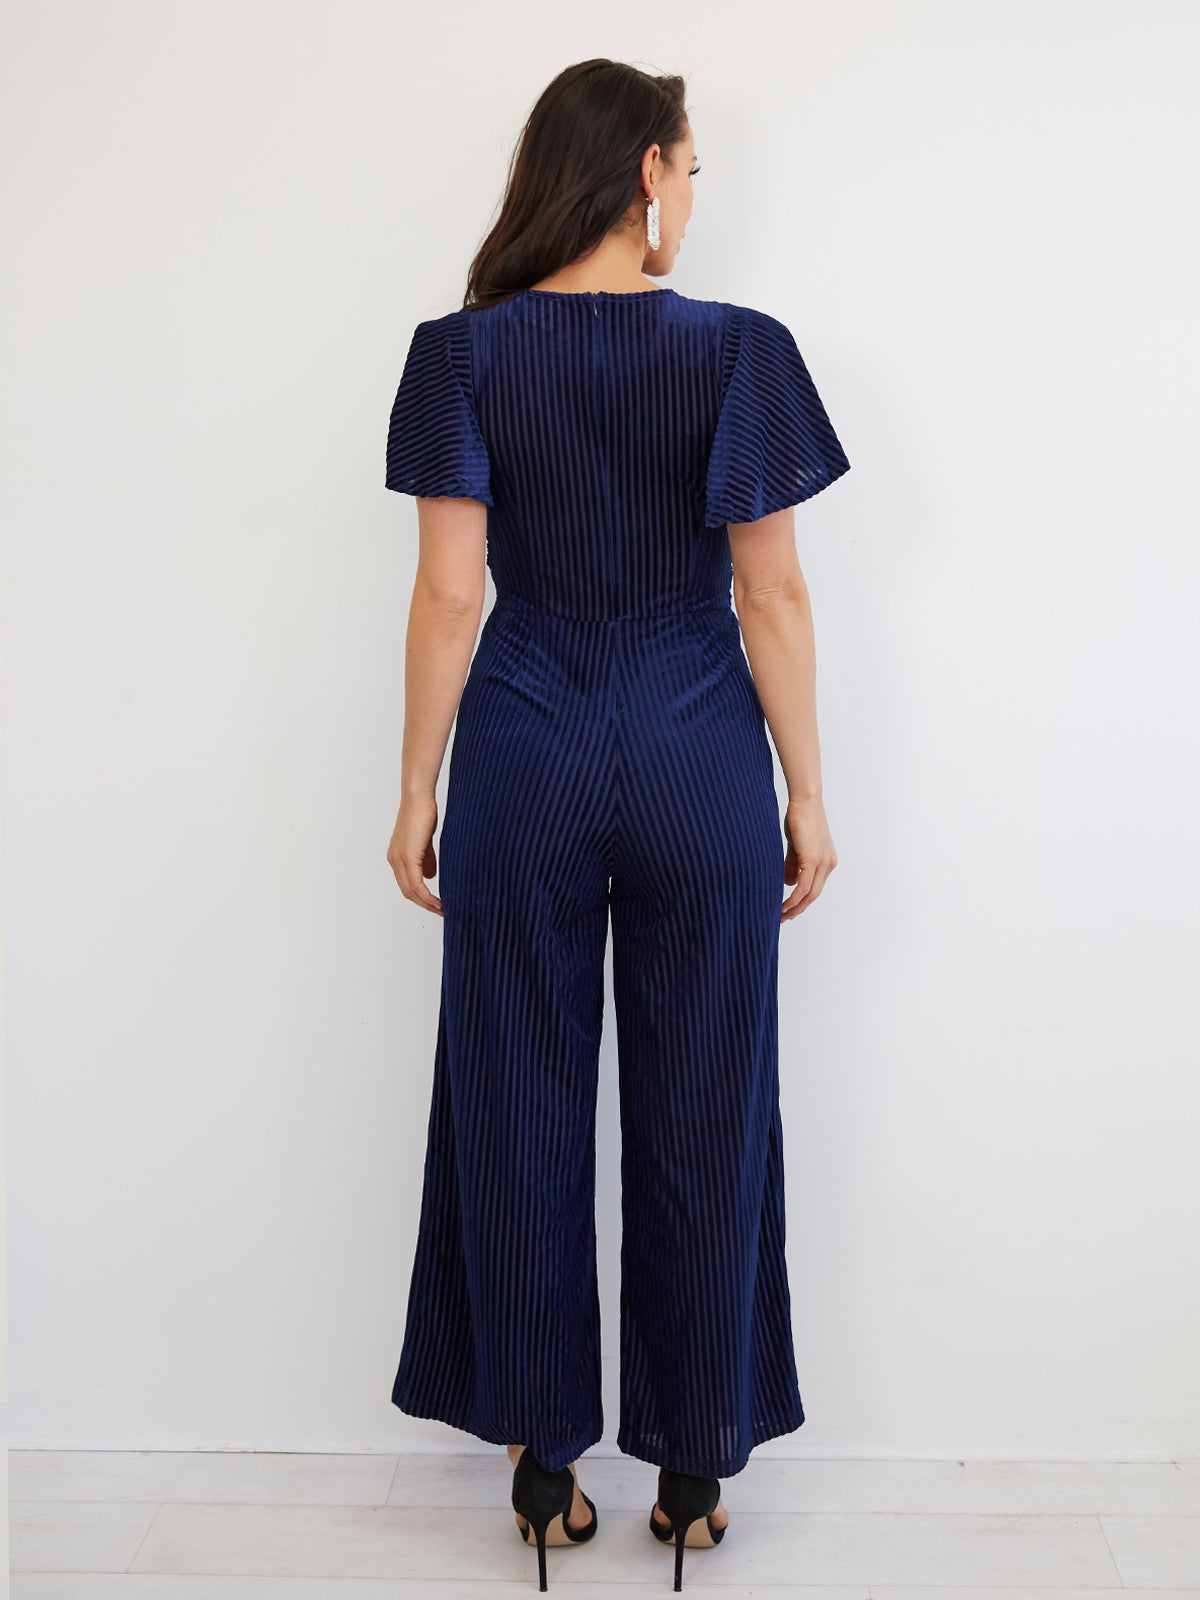 ALL THE LOVERS LUXE JUMPSUIT